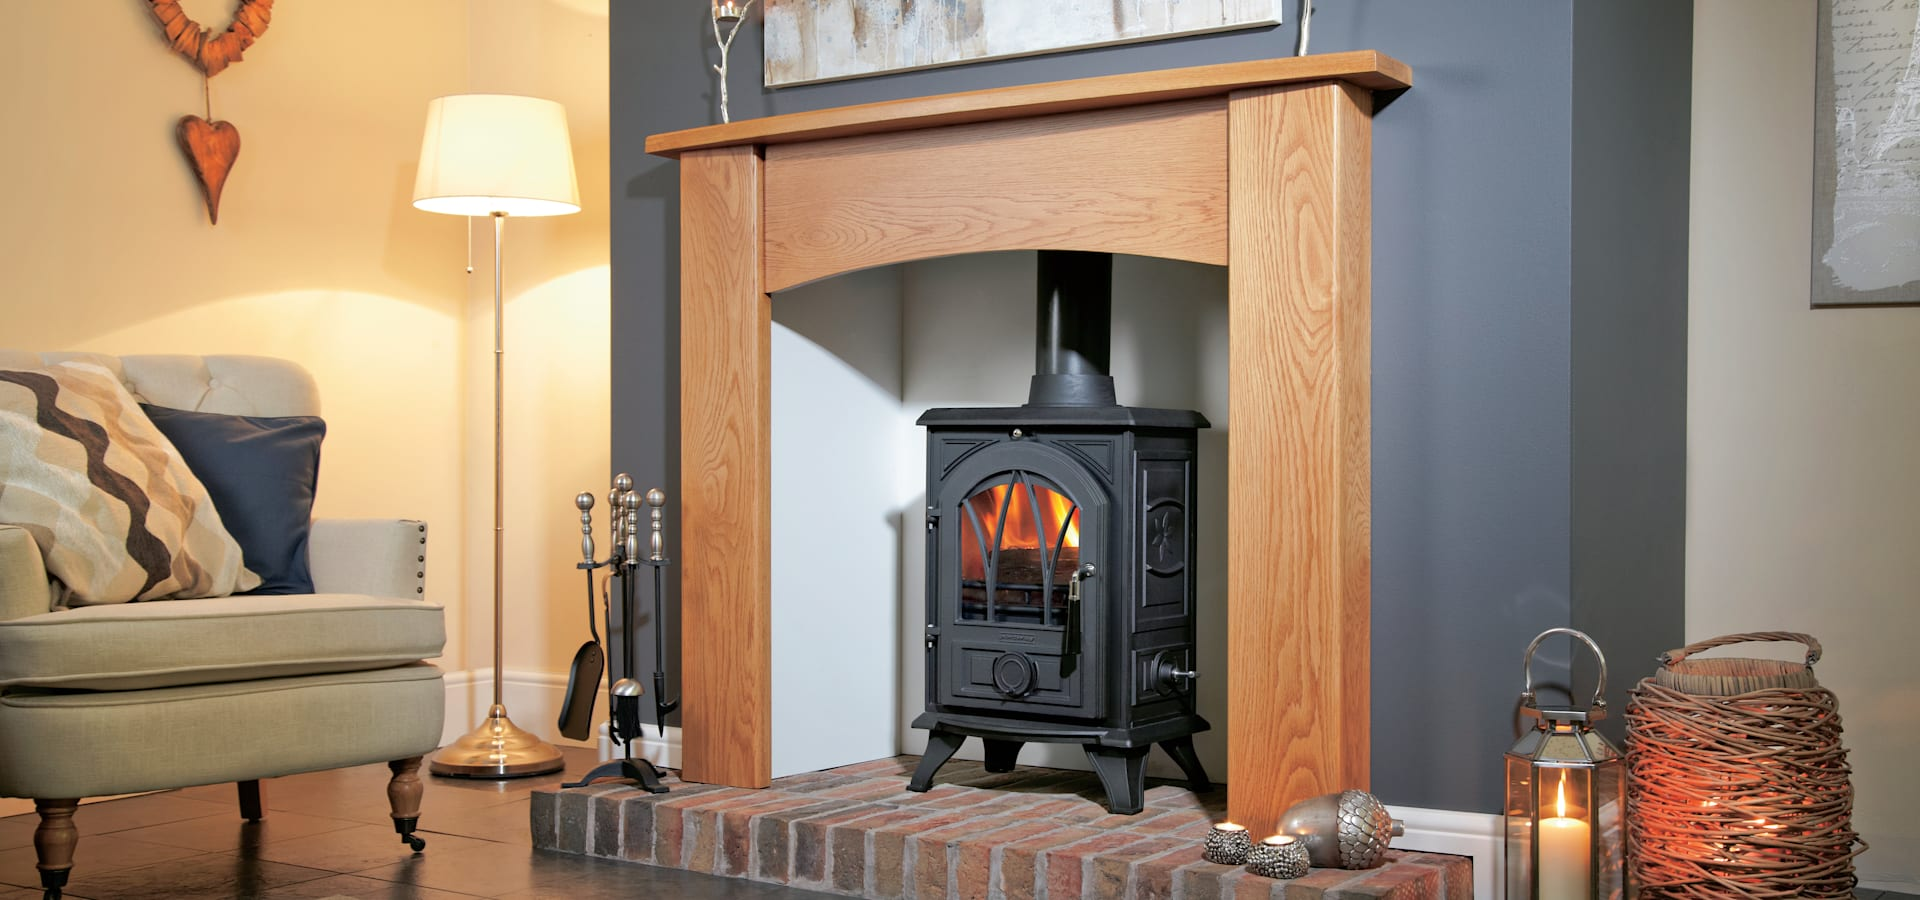 Fiveways Fires & Stoves